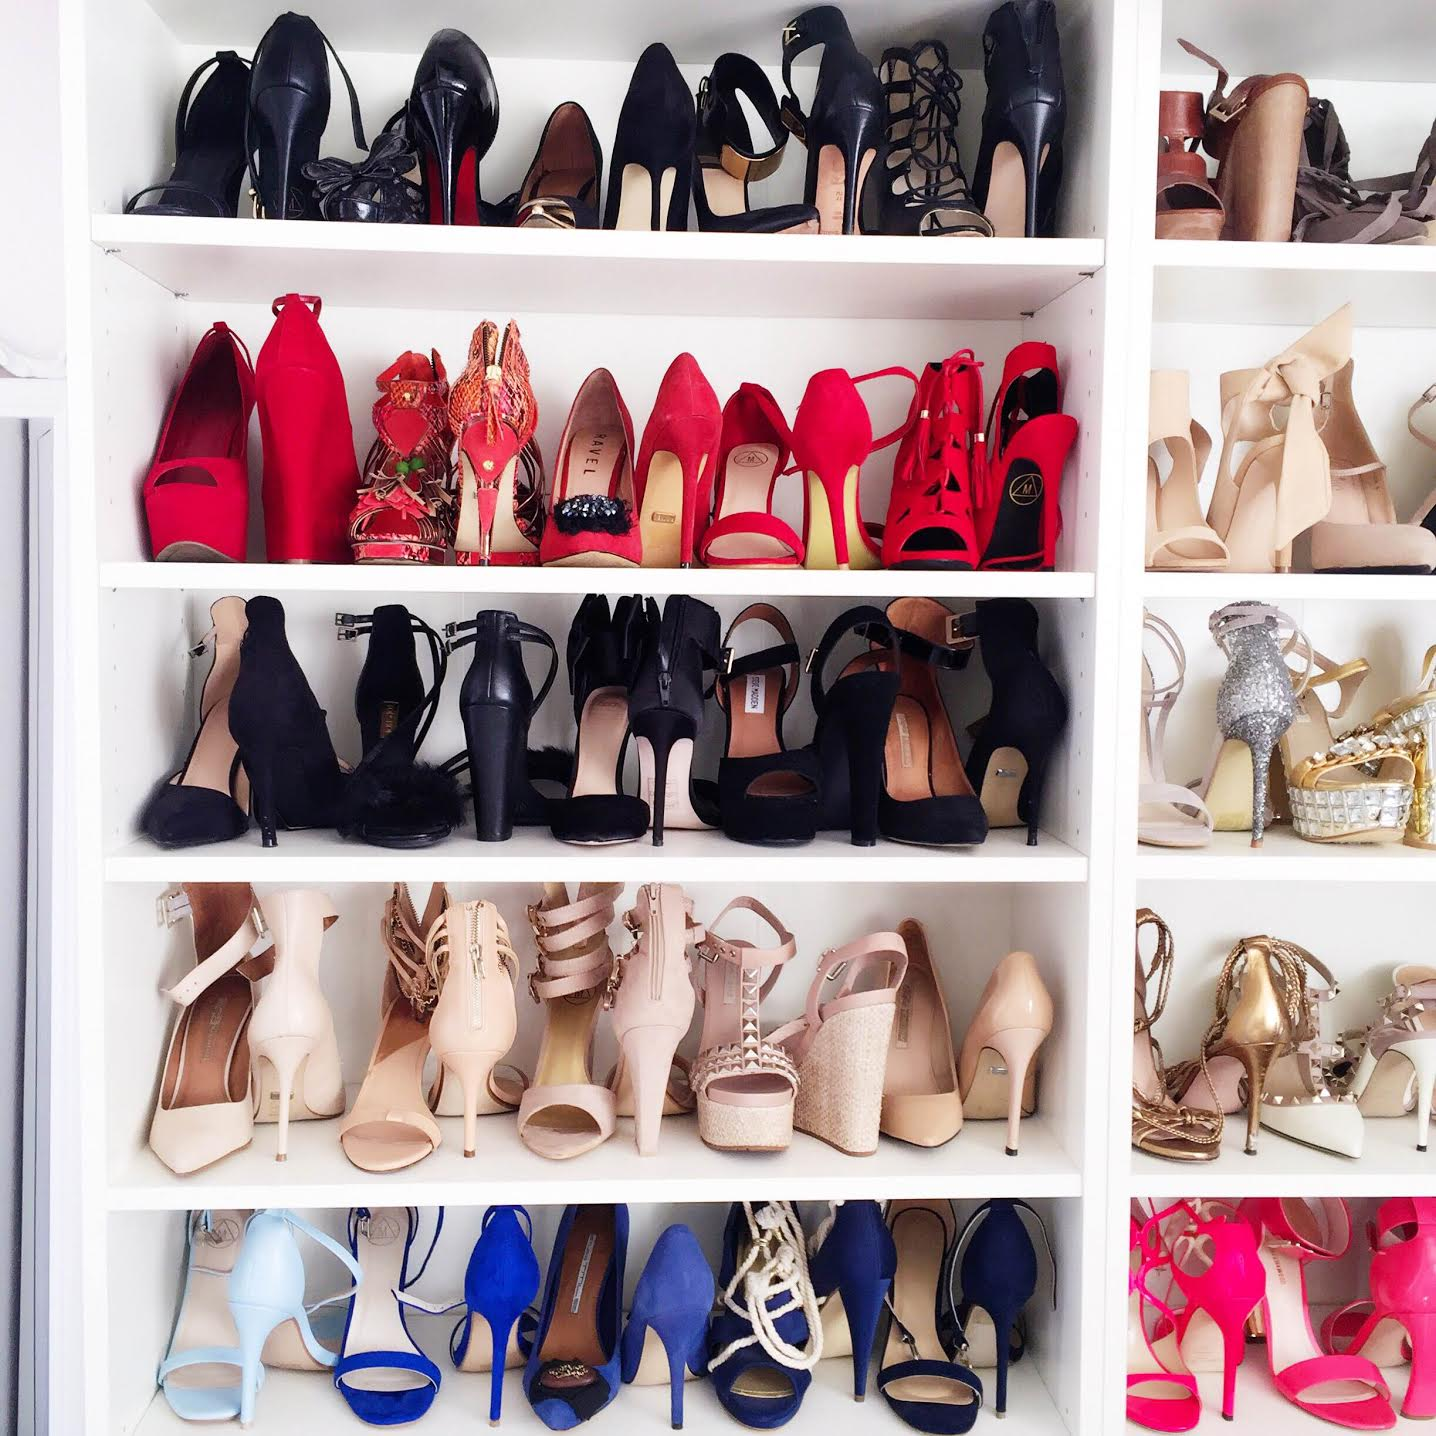 shoes-closet-fashionhippieloves